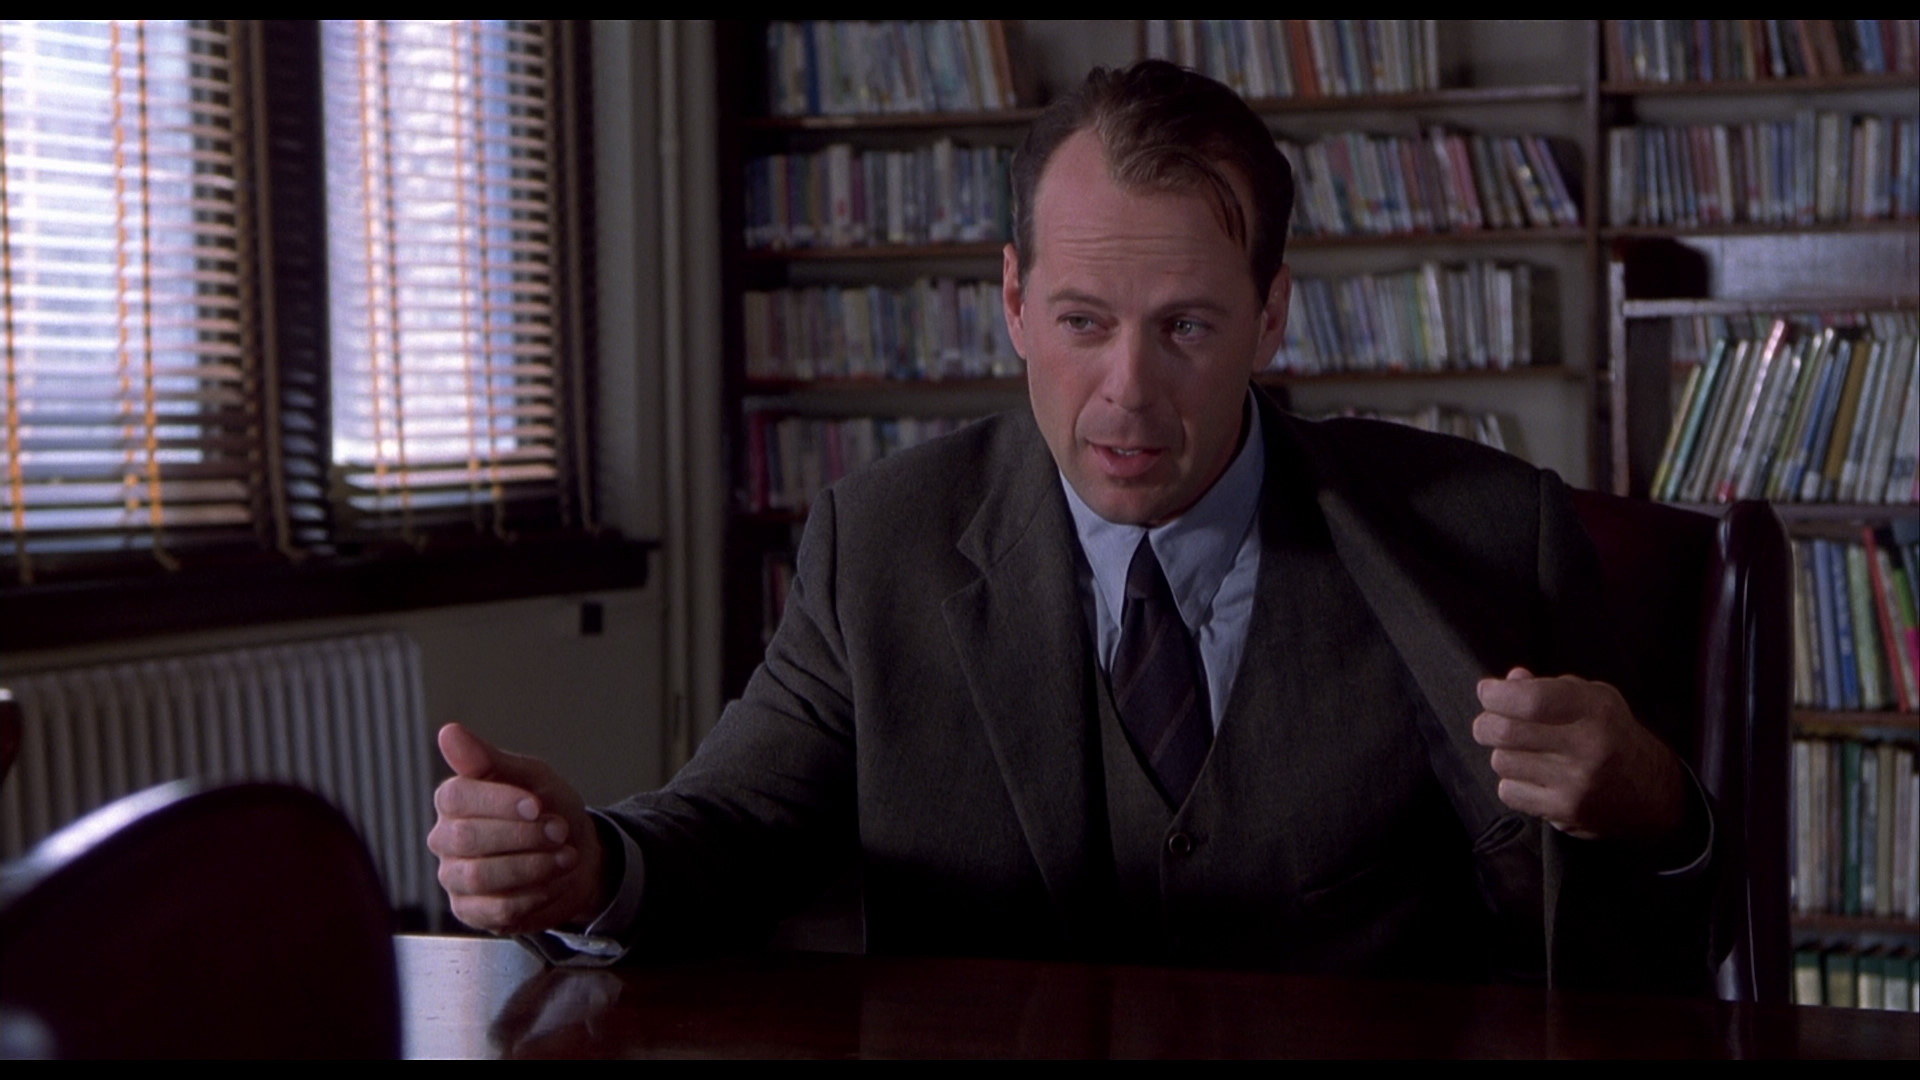 reactions about the movie sixth sense The sixth sense came out 15 years ago today, and it still contains the greatest twist ending since its release postmillennial films like identity and memento were excellent in the same pursuit, but the '90s were the greatest era of plot-warping finale mind enemas to ever grace the silver screen.